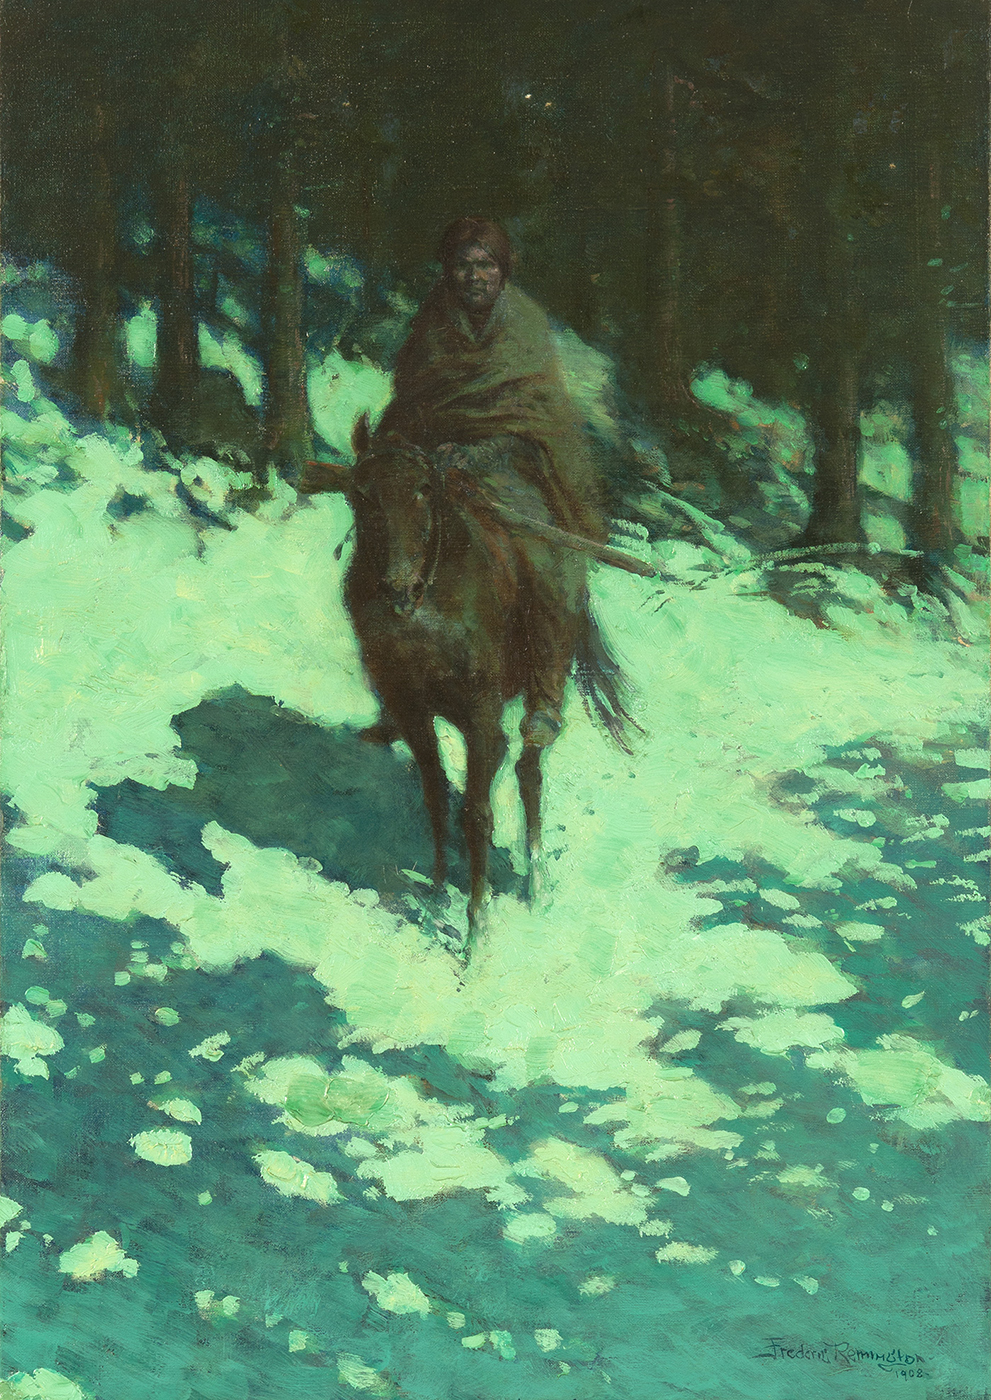 An indigenous American sits on a horse in a wooded landscape at night.